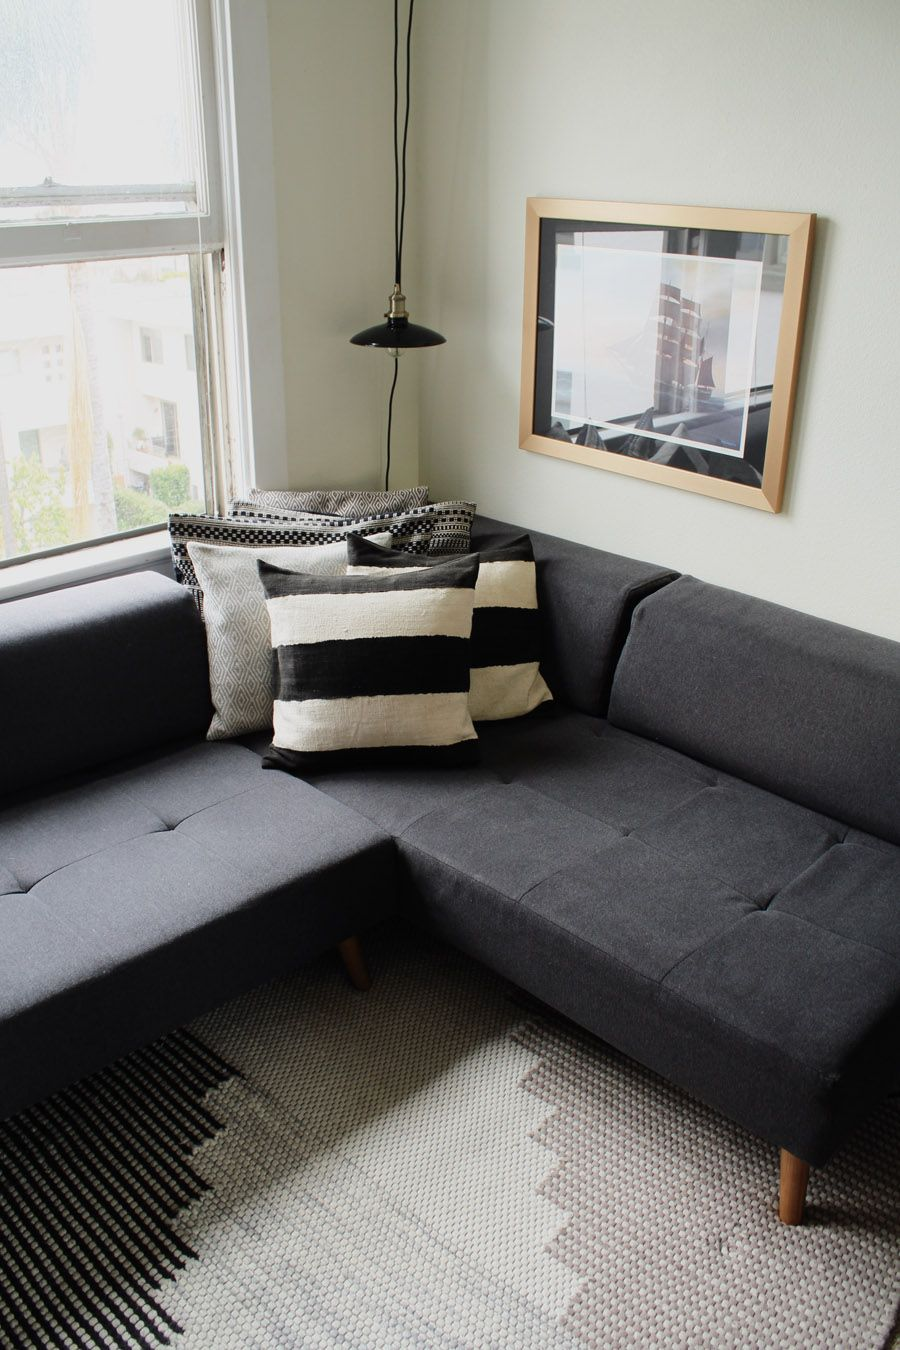 Small Space Solution A Couch That Turns Into A Queen Size